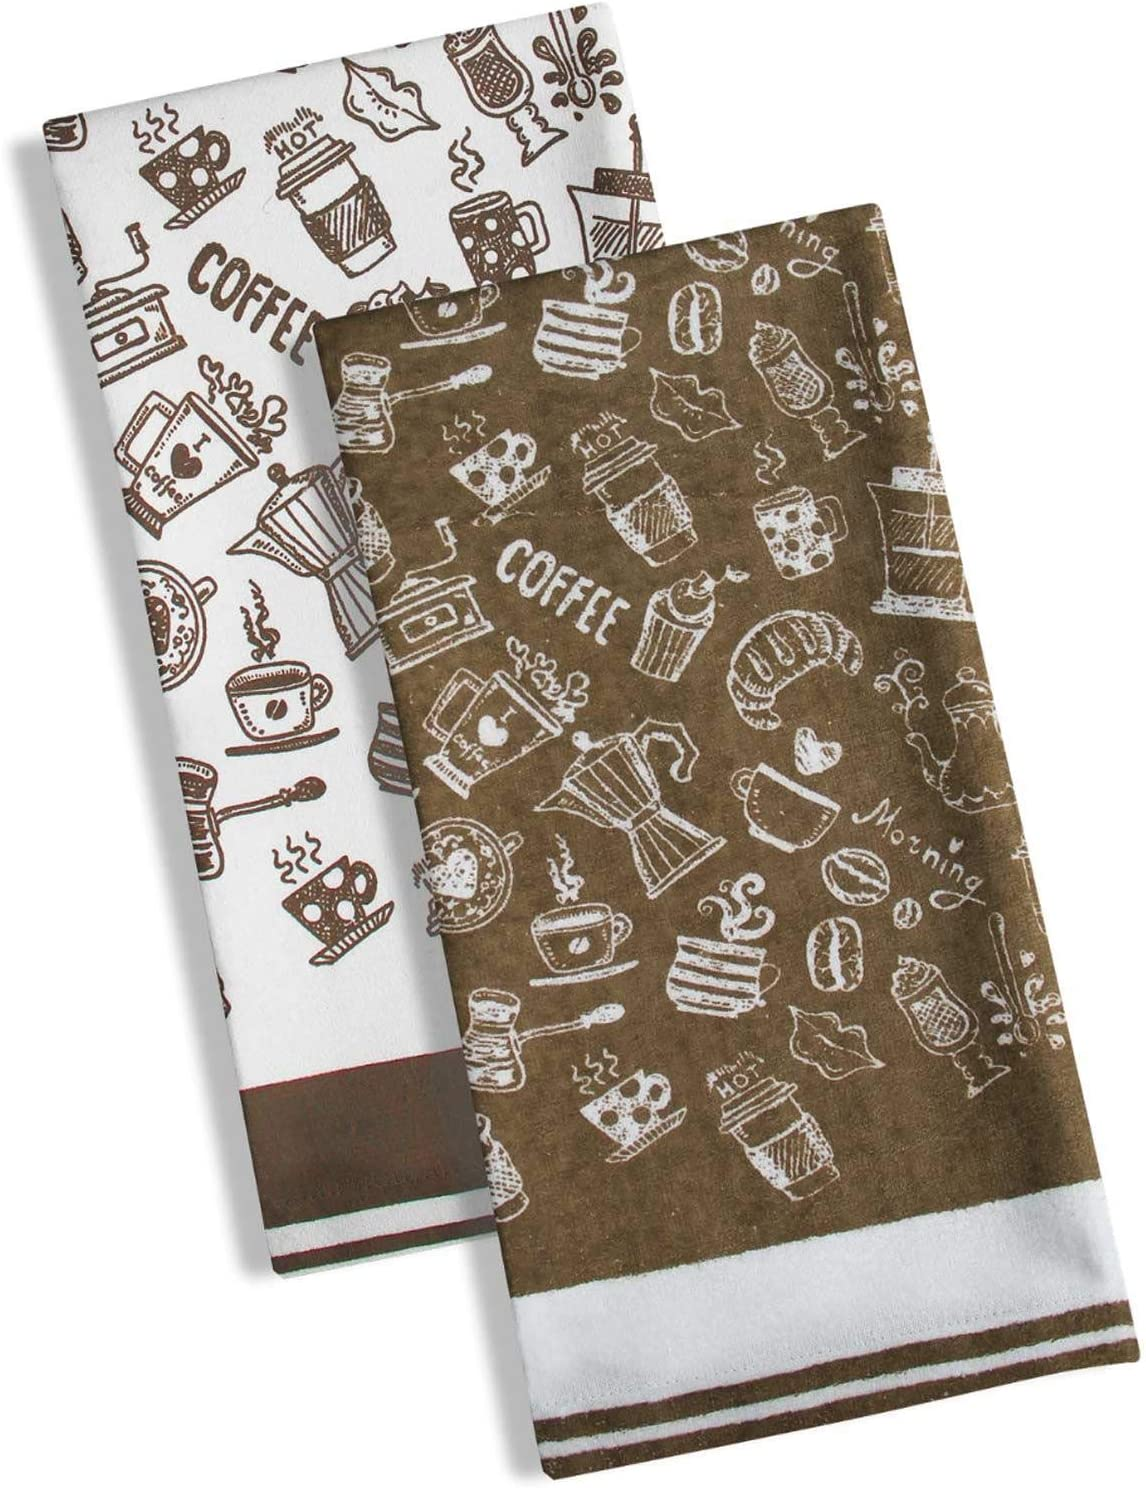 It Ideal Textiles Set Of 2 Coffee Tea Towels Pack Of Two Latte Velour Woven Kitchen Towels Funky 100 Cotton Absorbent Tea Towel Packs Morning Coffee Amazon Co Uk Kitchen Home